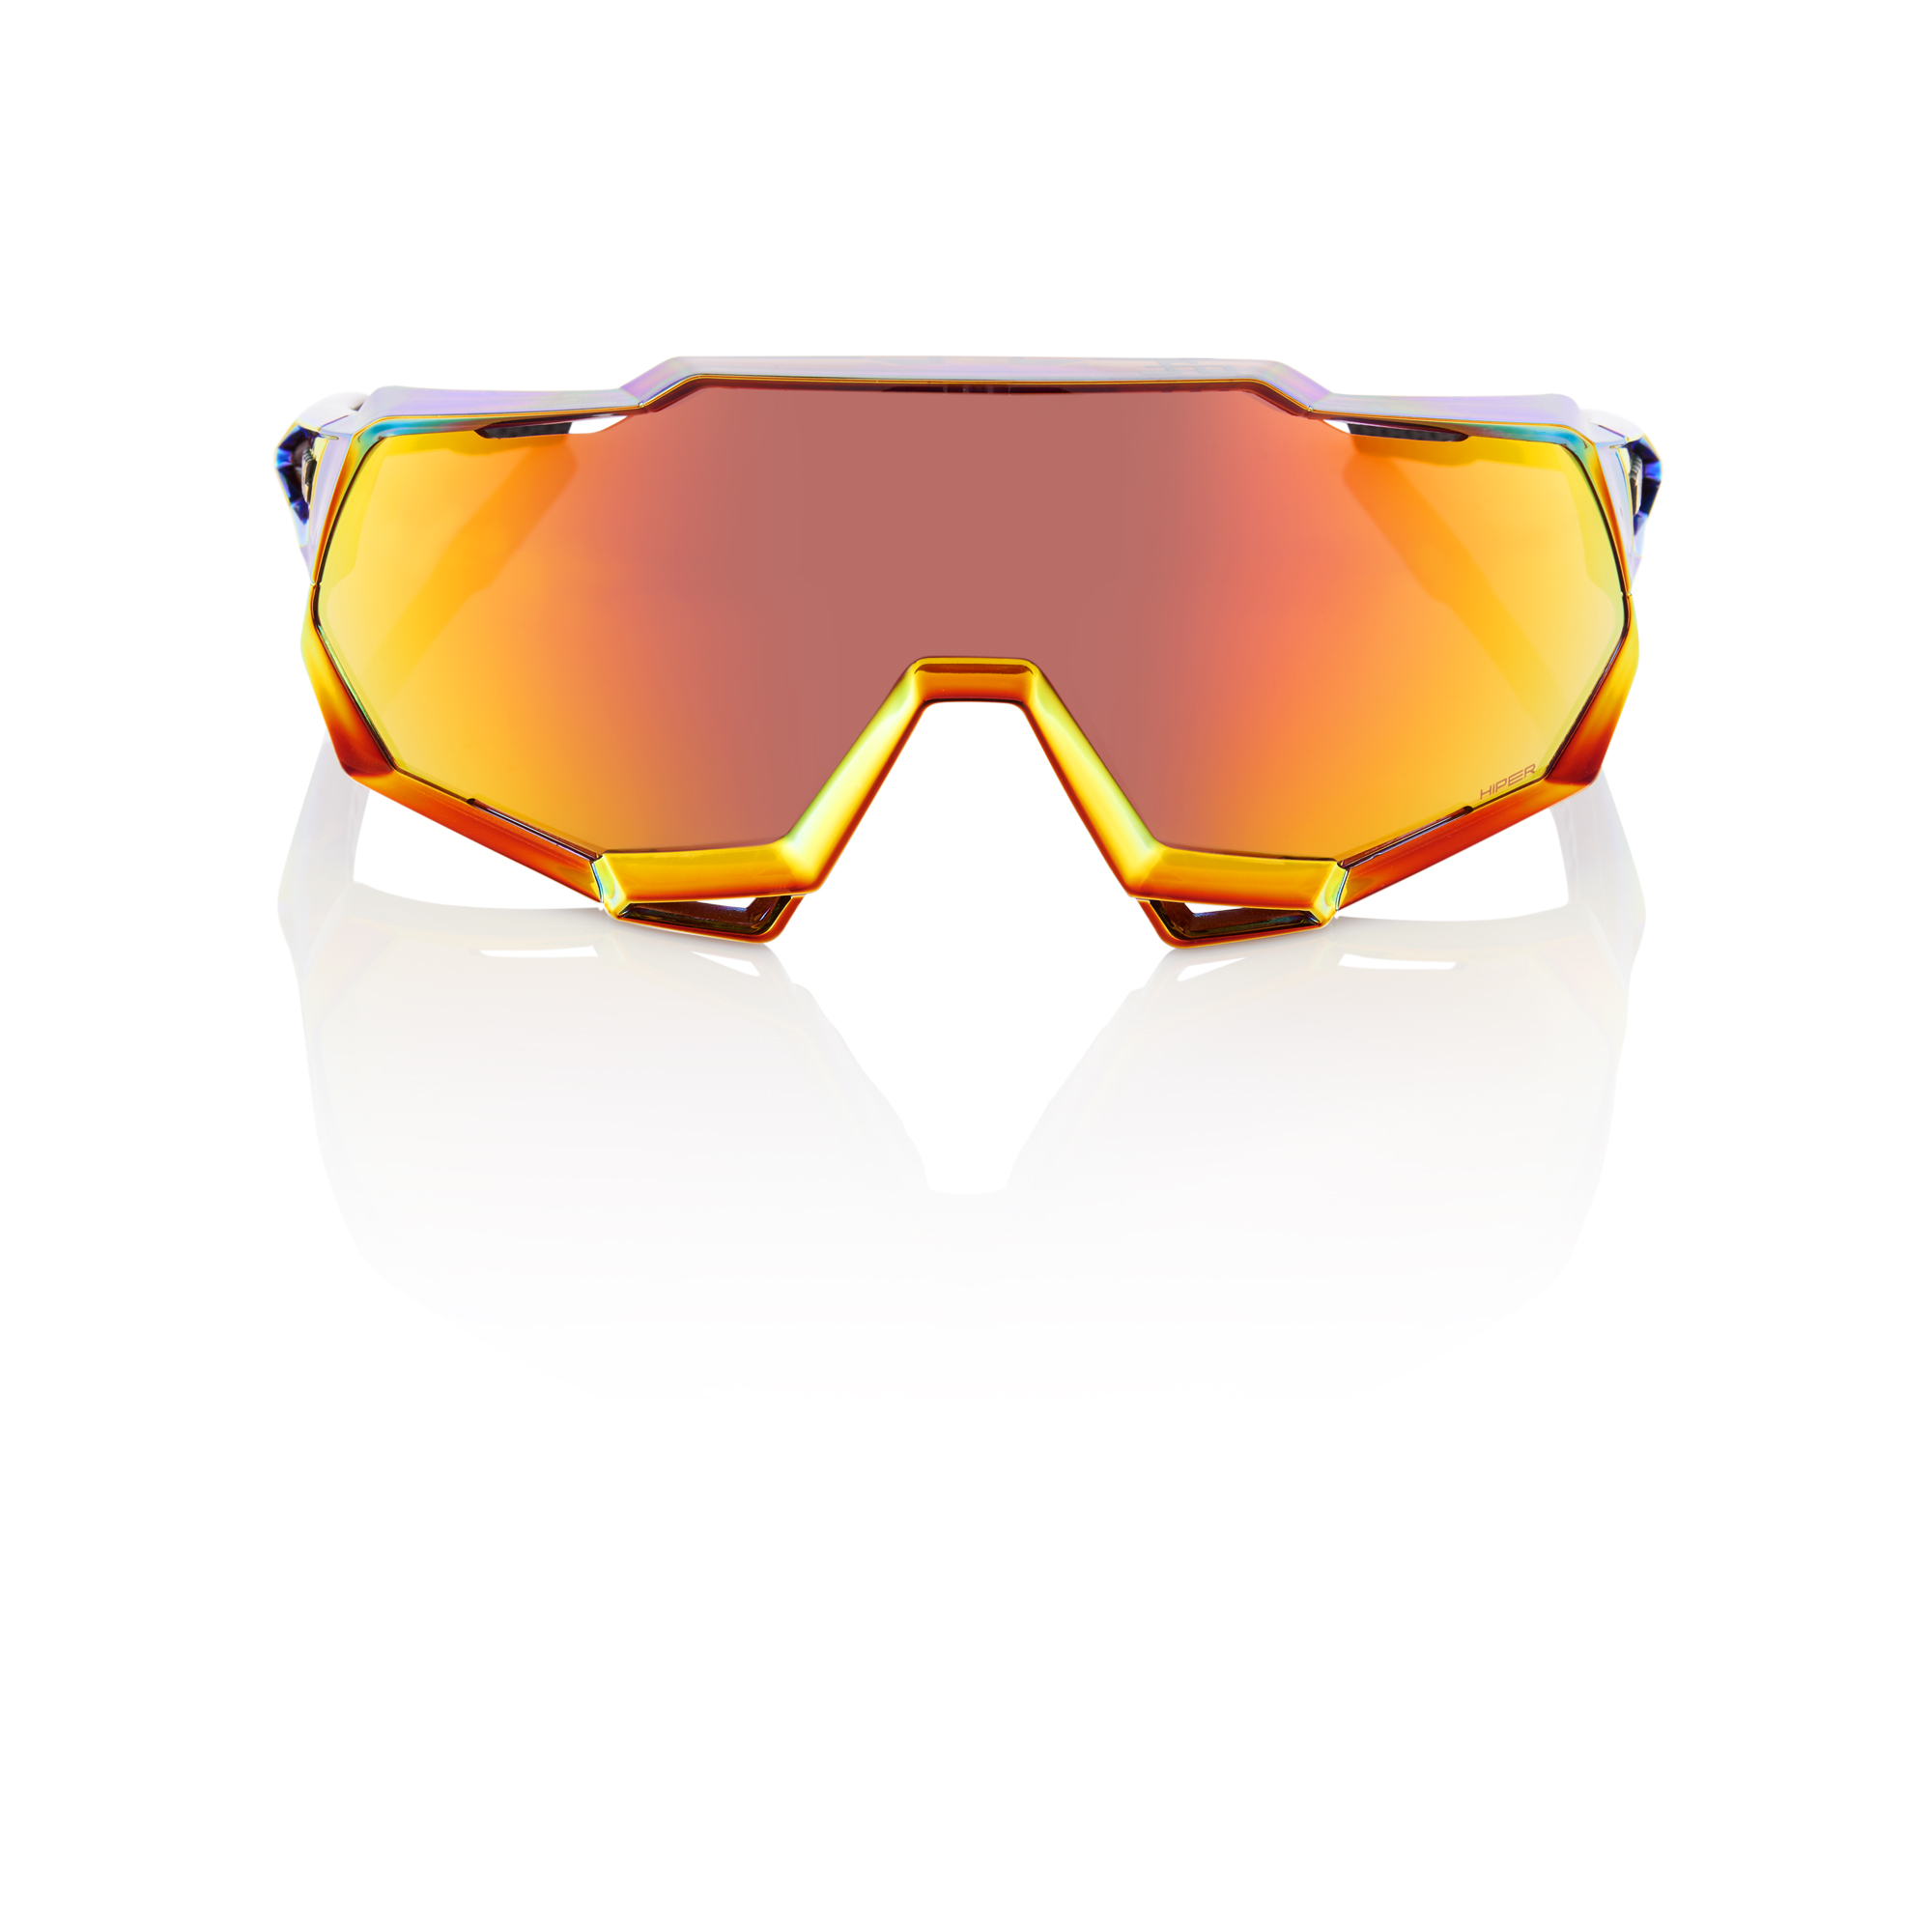 a52509b1c8 100% Peter Sagan Limited Edition Sunglasses - Love The Mountains